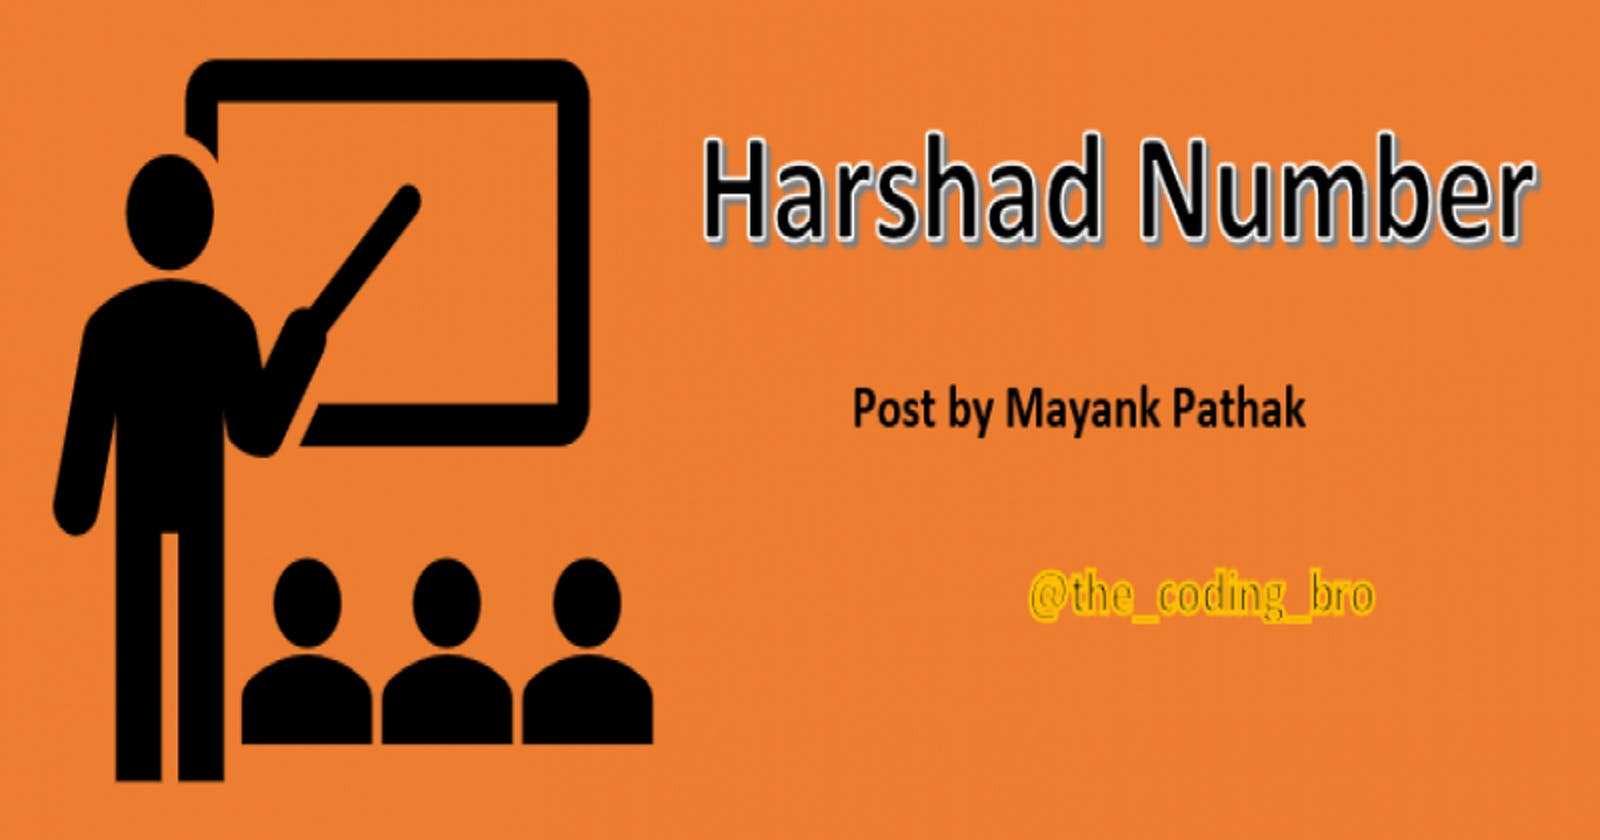 Do you Know What is Harshad Number